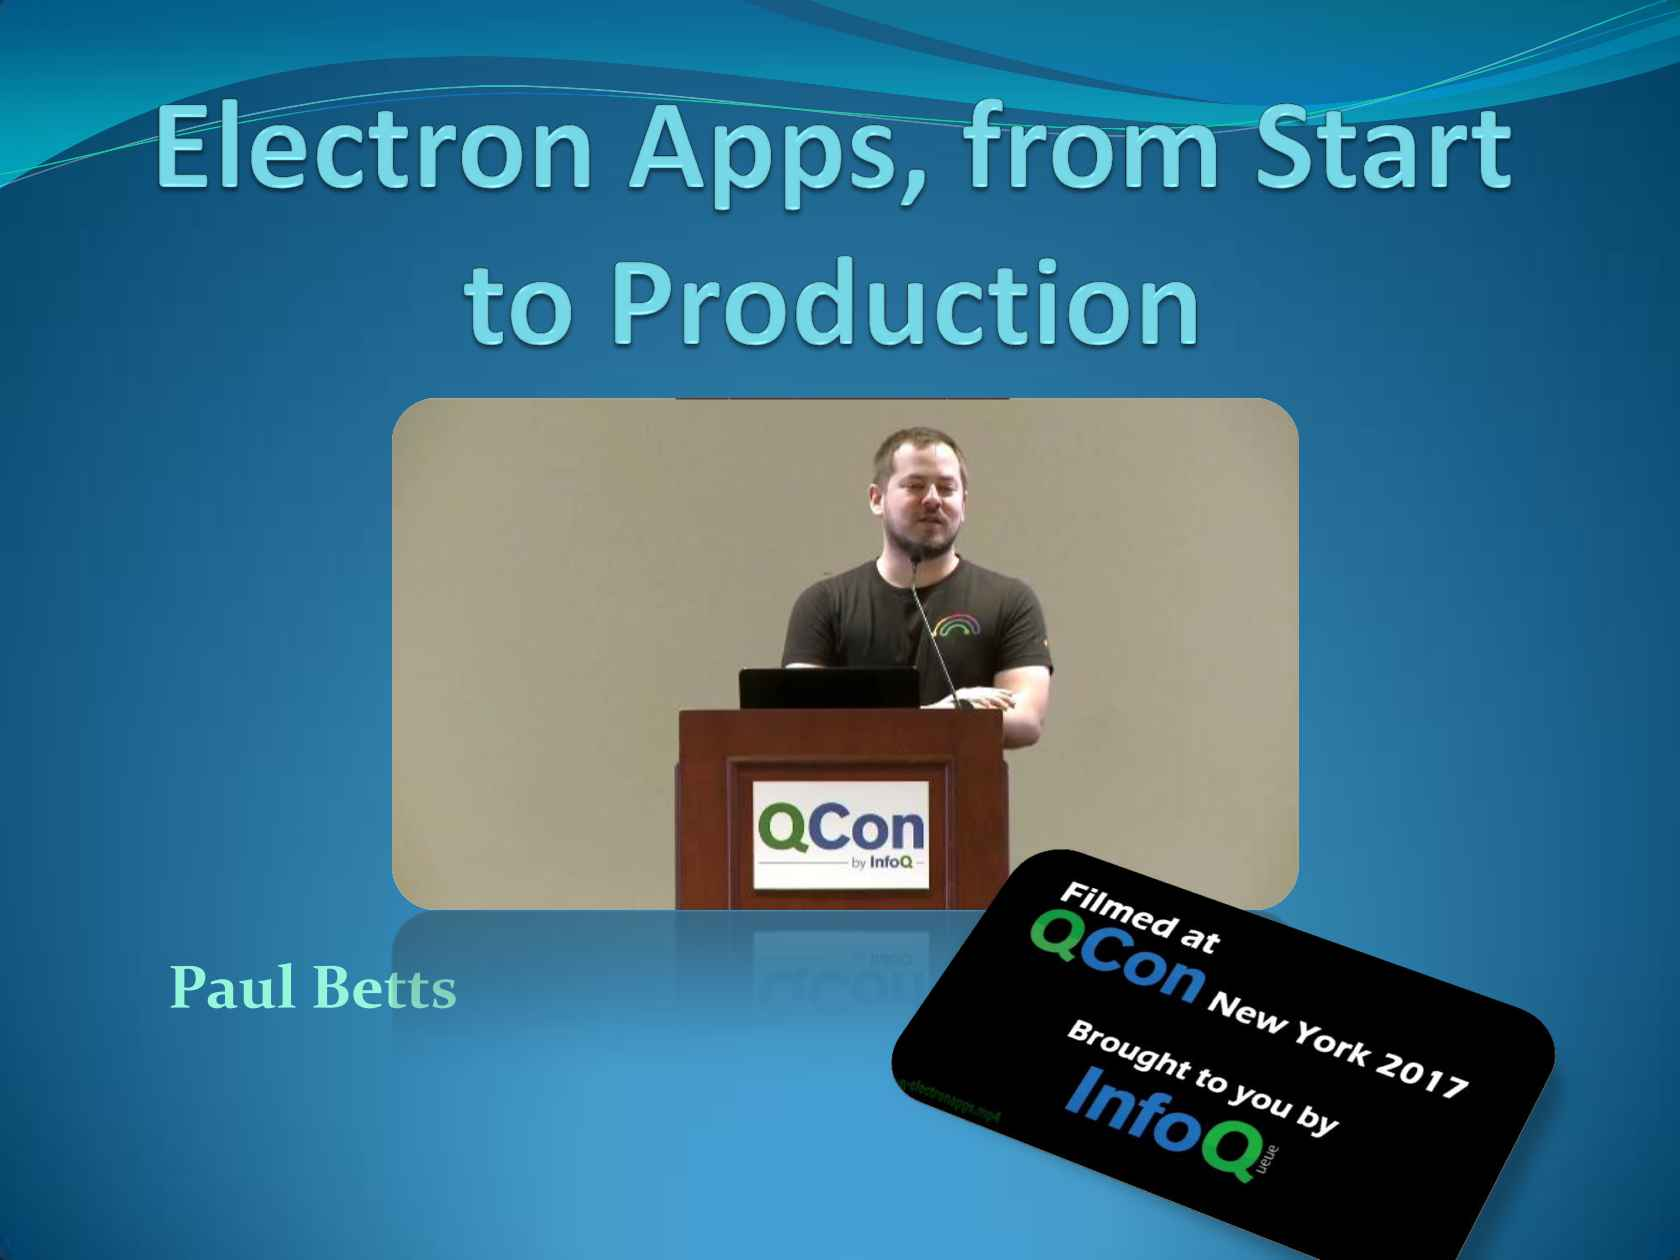 Electron Apps, from Start to Production